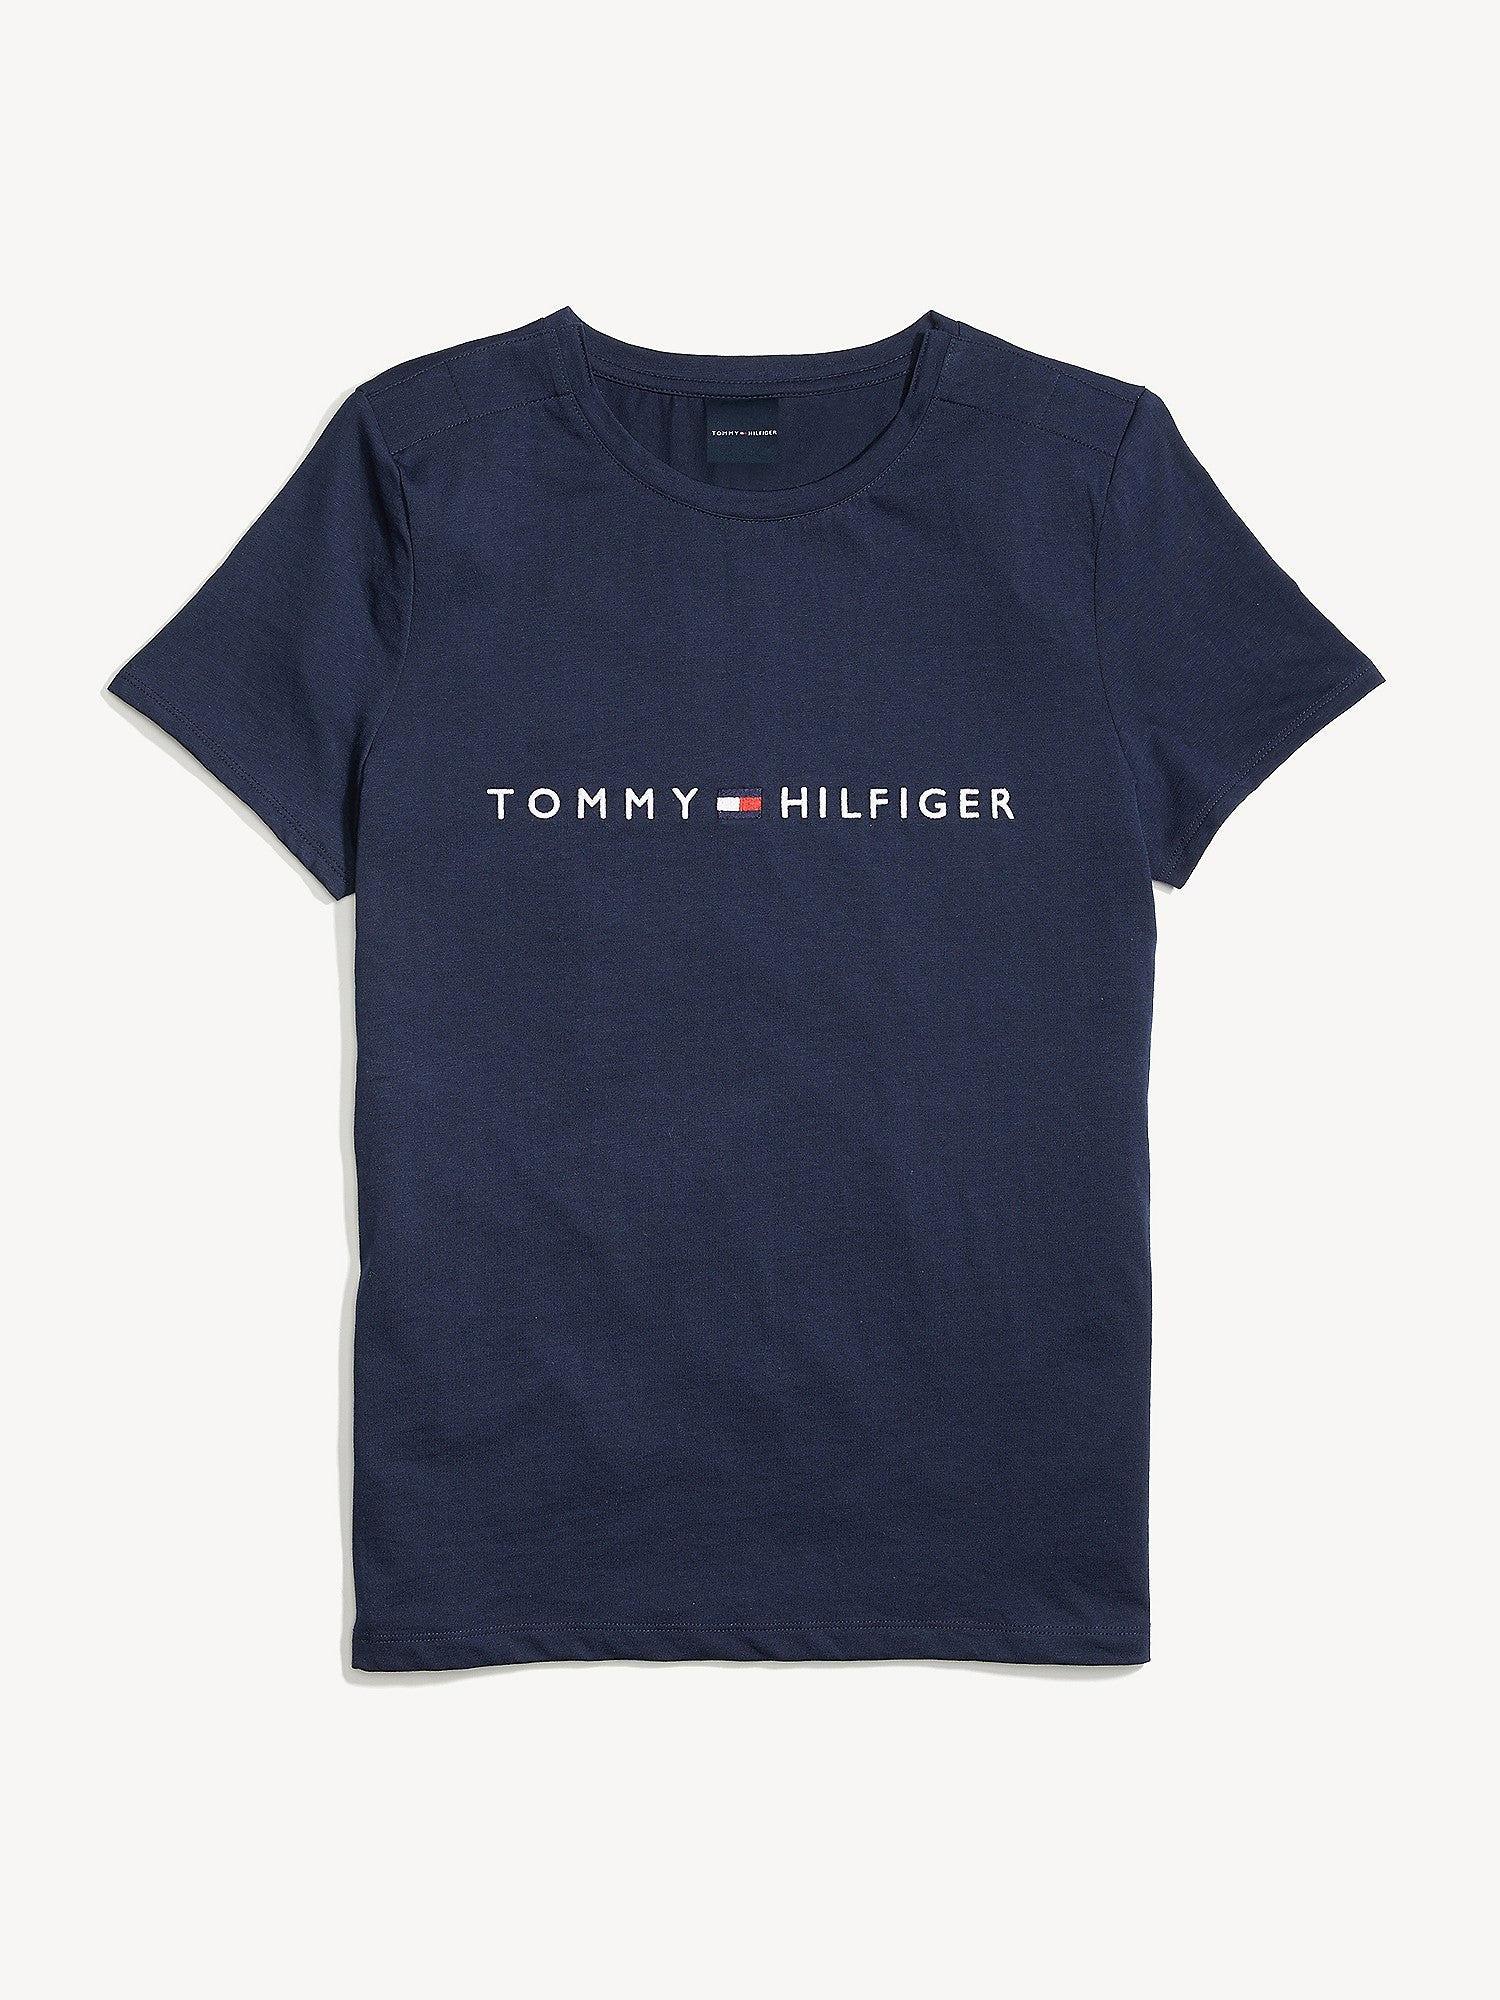 Tommy Hilfiger T-Shirt - Navy